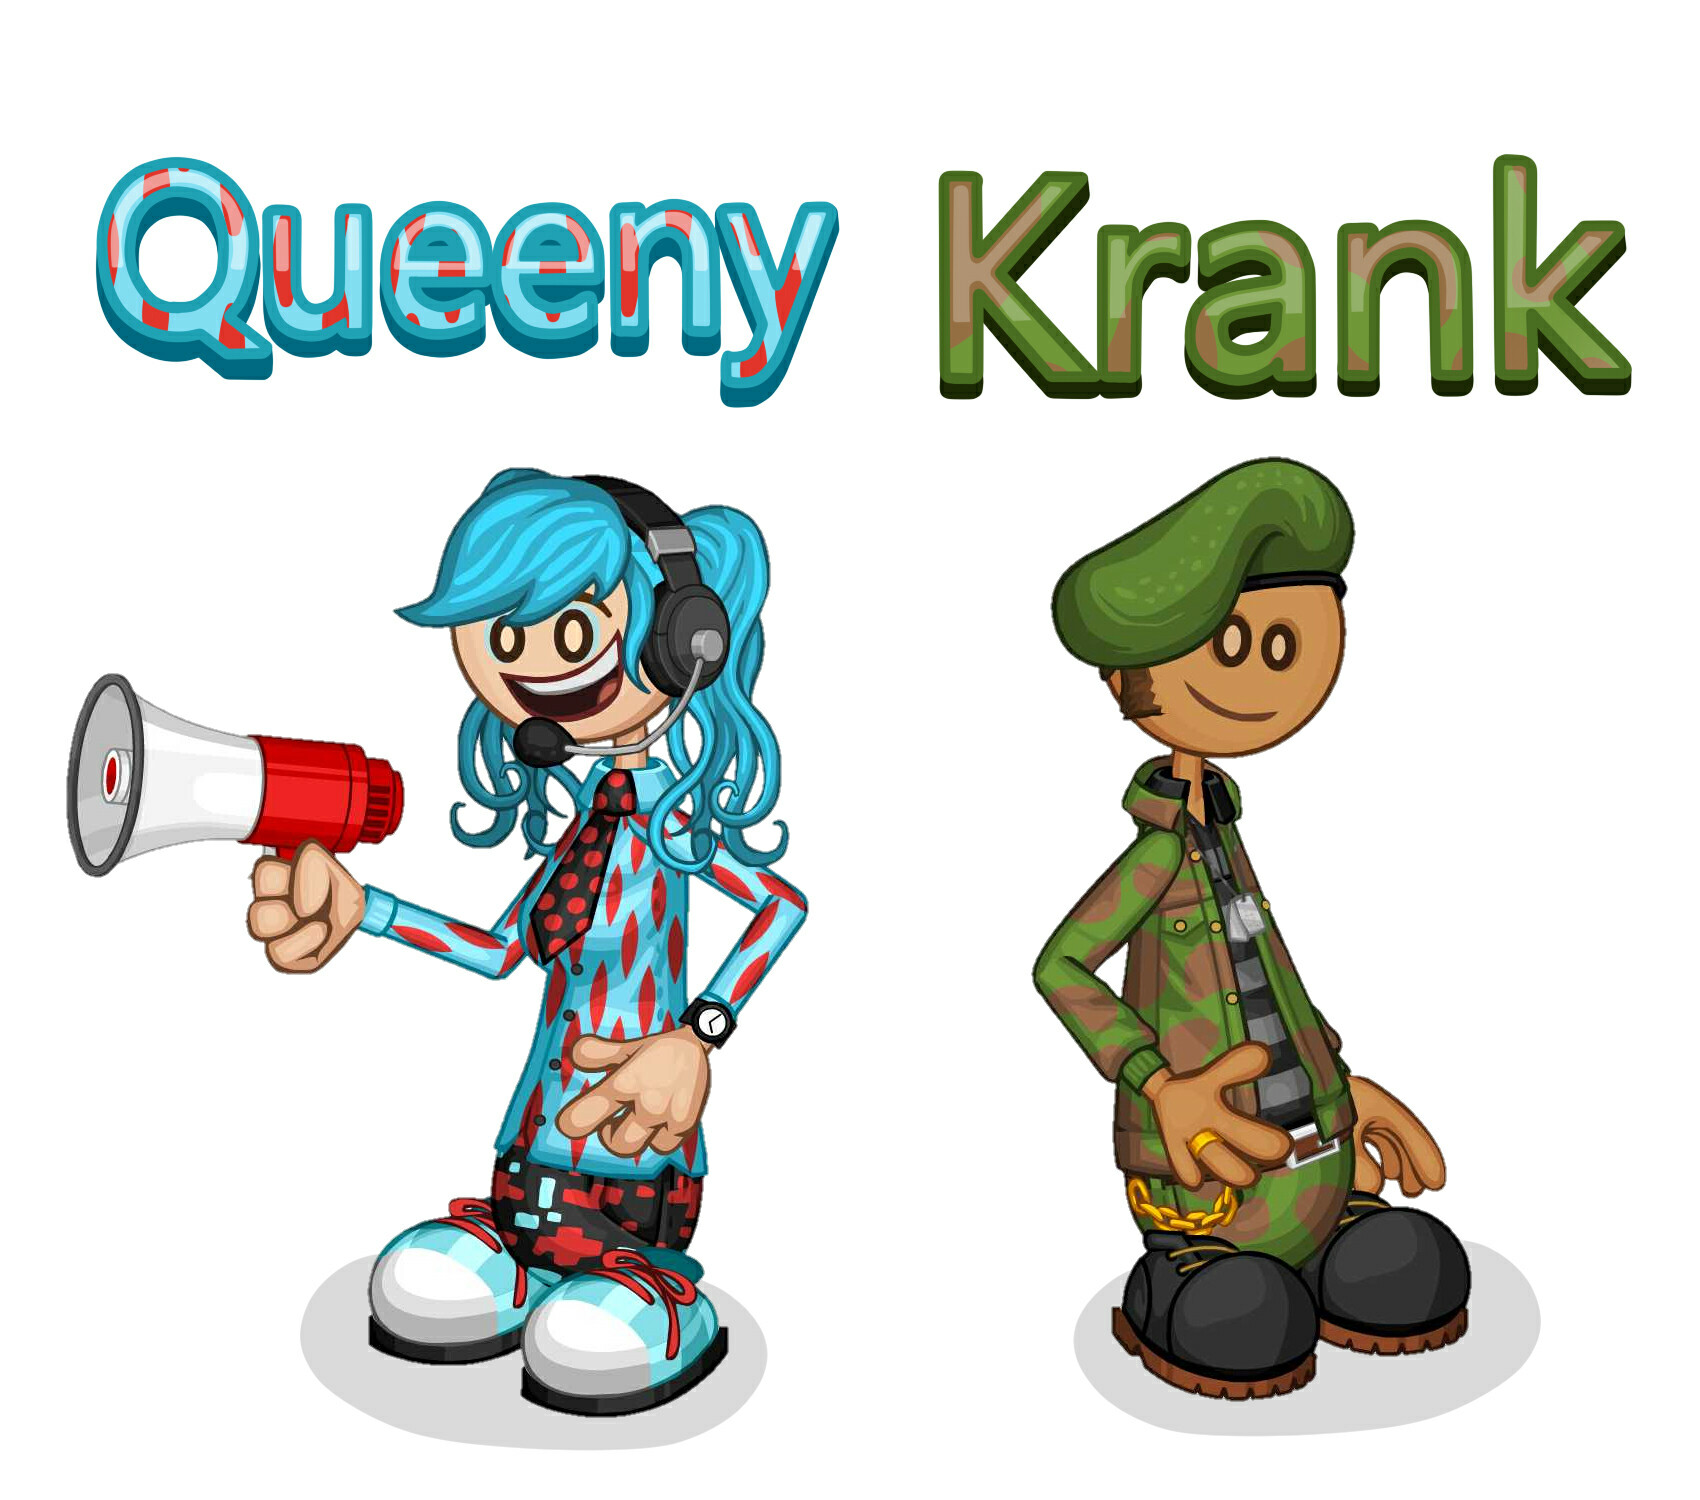 Queeny and Krank